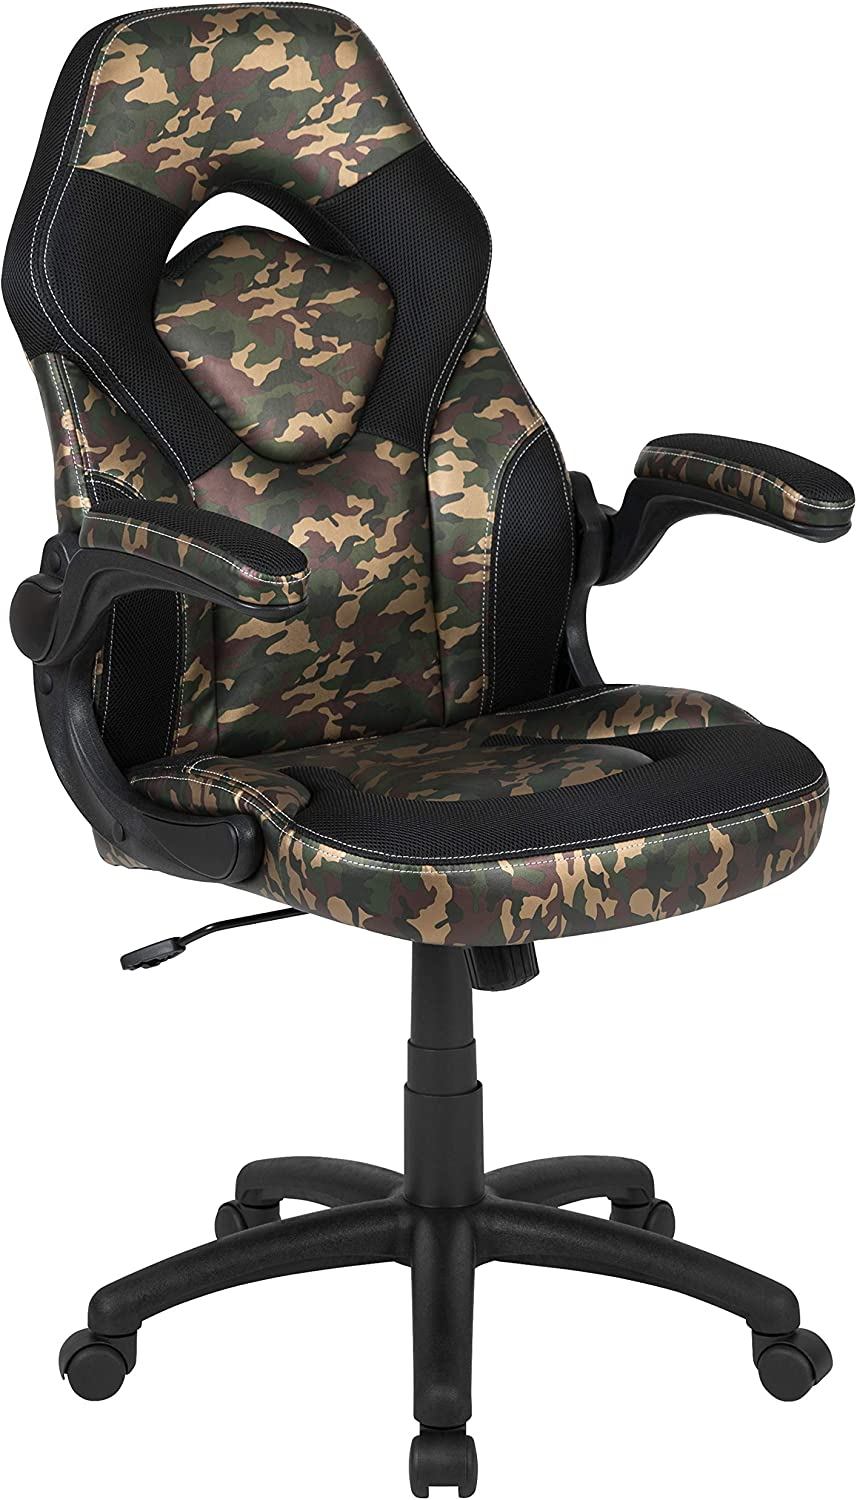 Flash Furniture X10 Gaming Chair Racing Office Ergonomic Computer PC Adjustable Swivel Chair with Flip-up Arms, Camouflage/Black LeatherSoft, BIFMA Certified